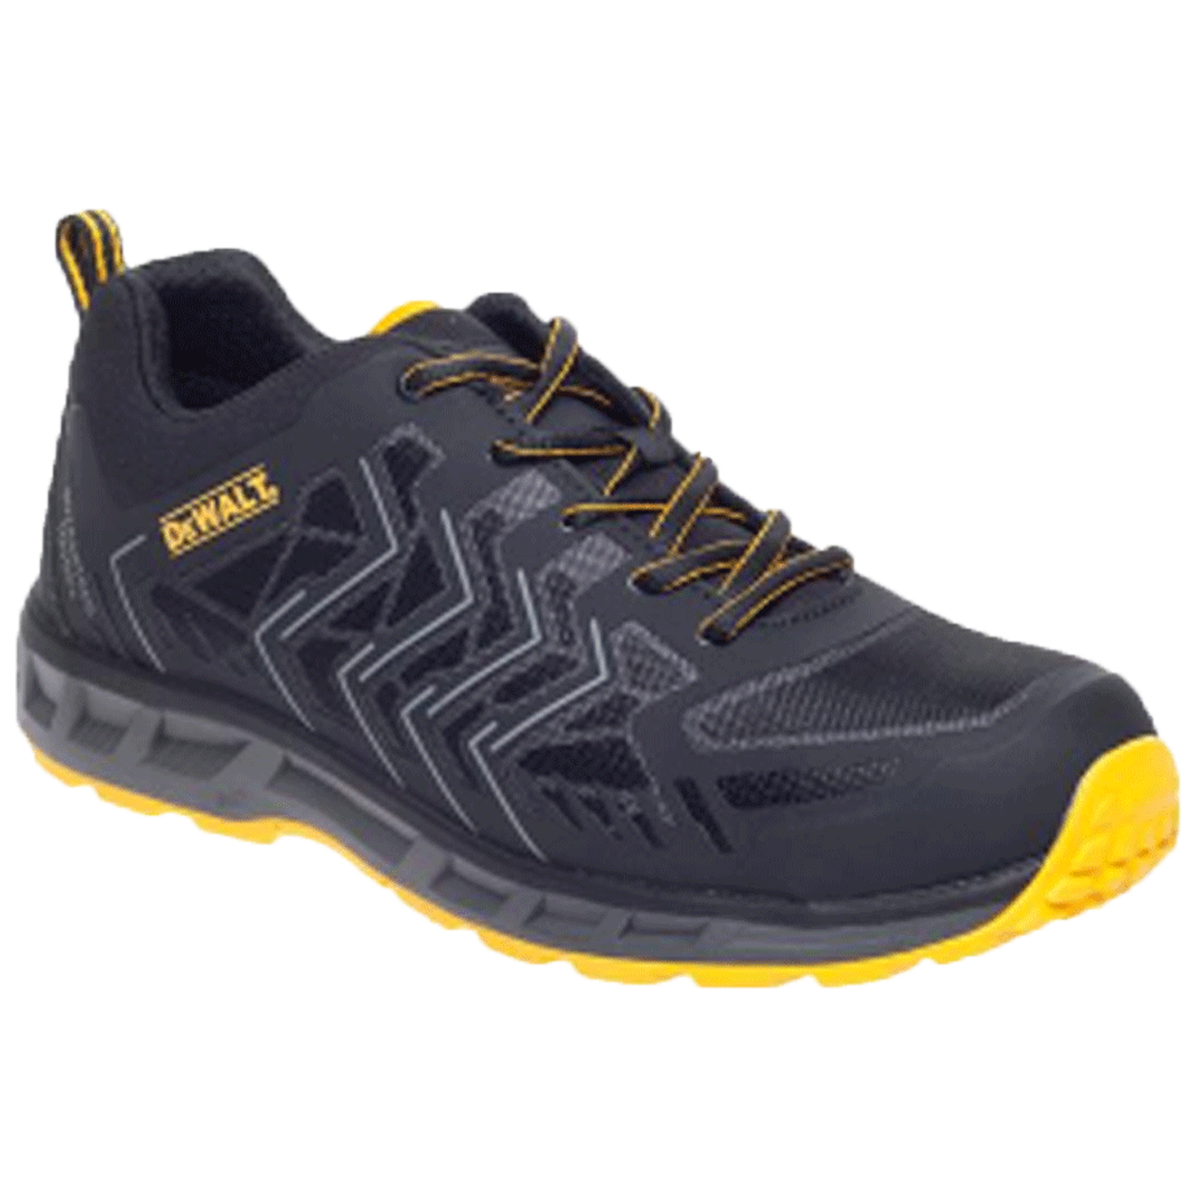 TOUGH, LIGHTWEIGHT AND STYLISH RANGE OF SAFETY TRAINERS